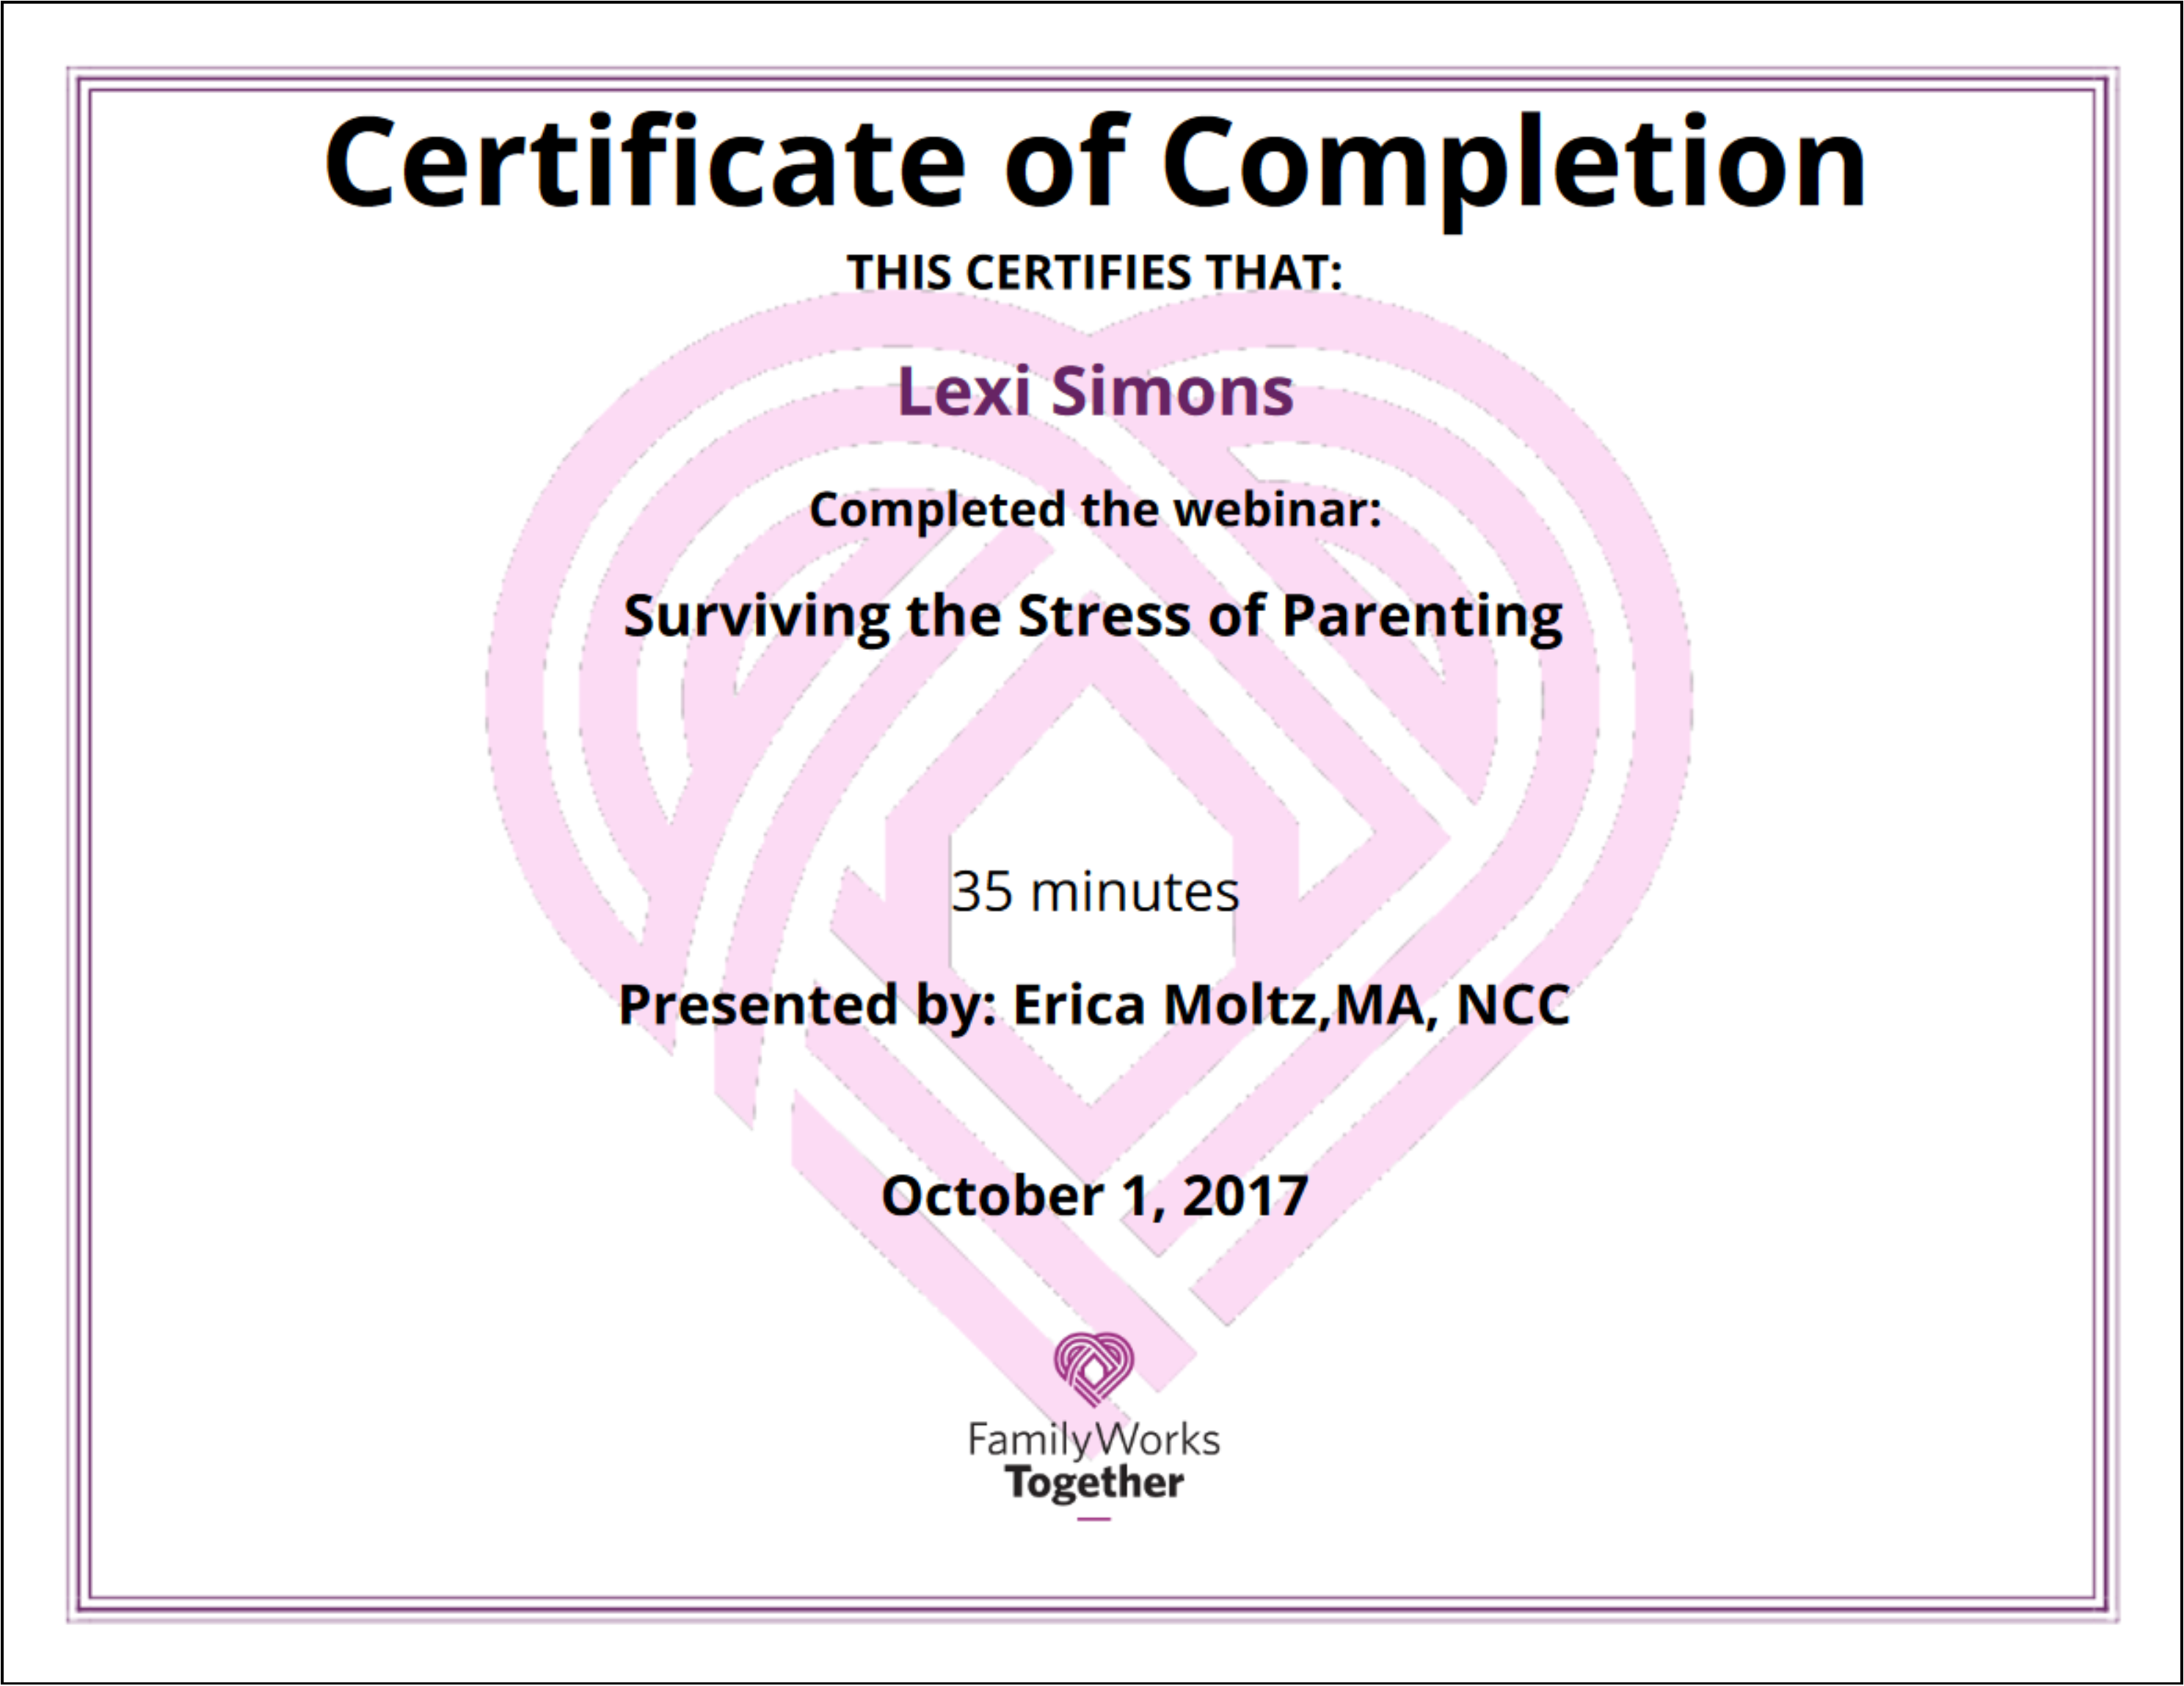 Certificate of Completion Parenting Webinar